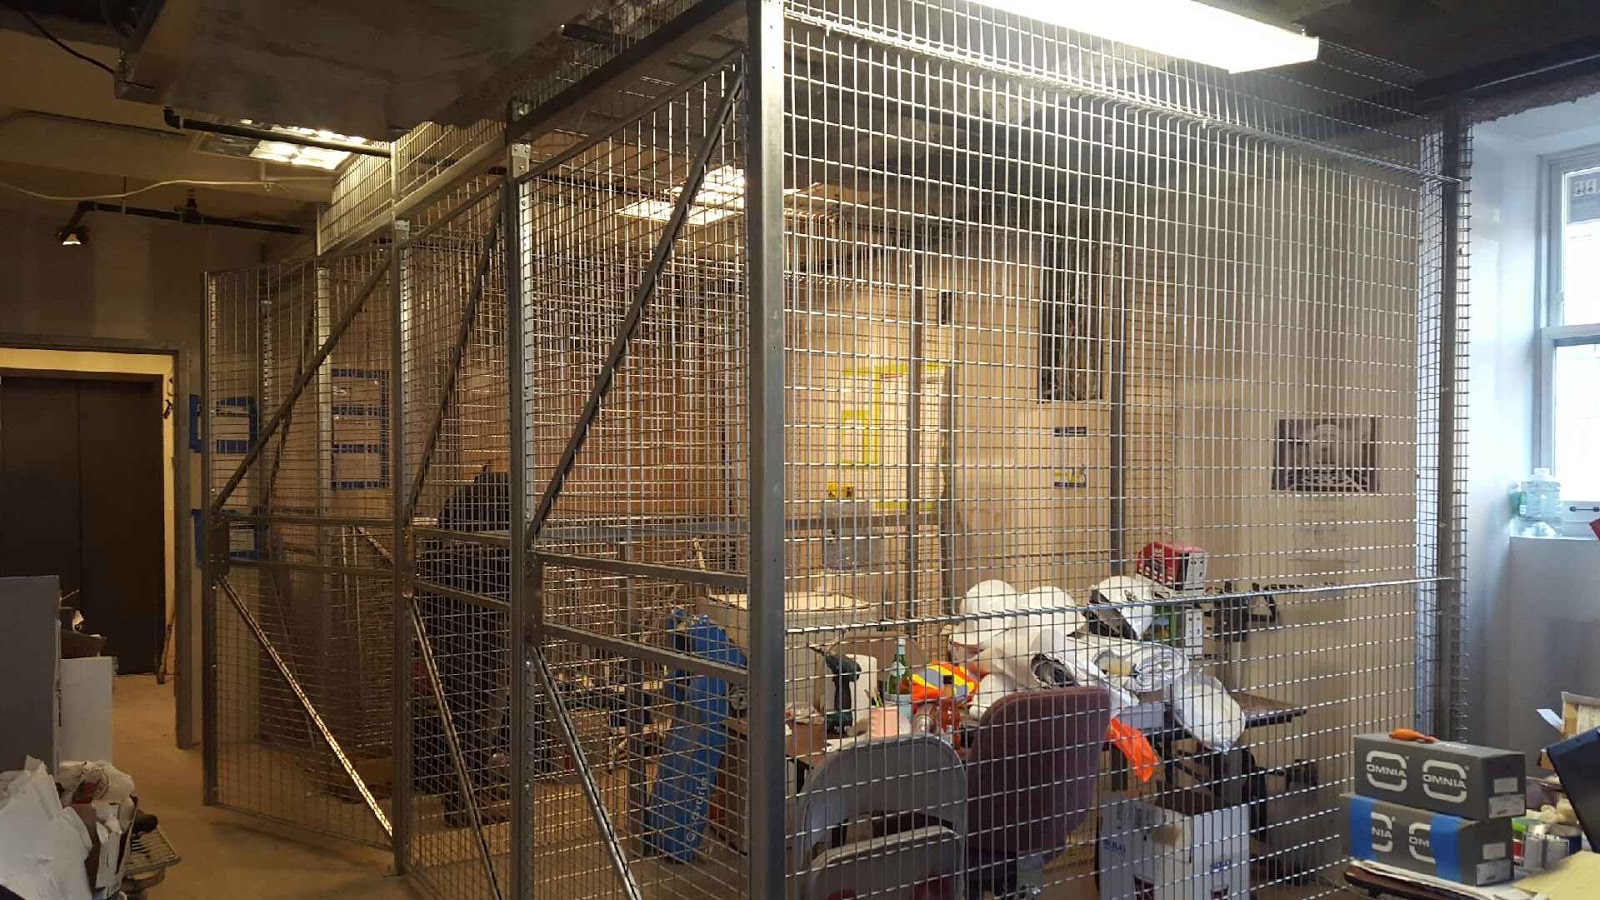 Our Team Also Installed Spacious Tenant Storage Cages In The Building On  Pierrepont. Made With 8ga Galvanized Steel With All Welded Grid Openings  And Steel ...